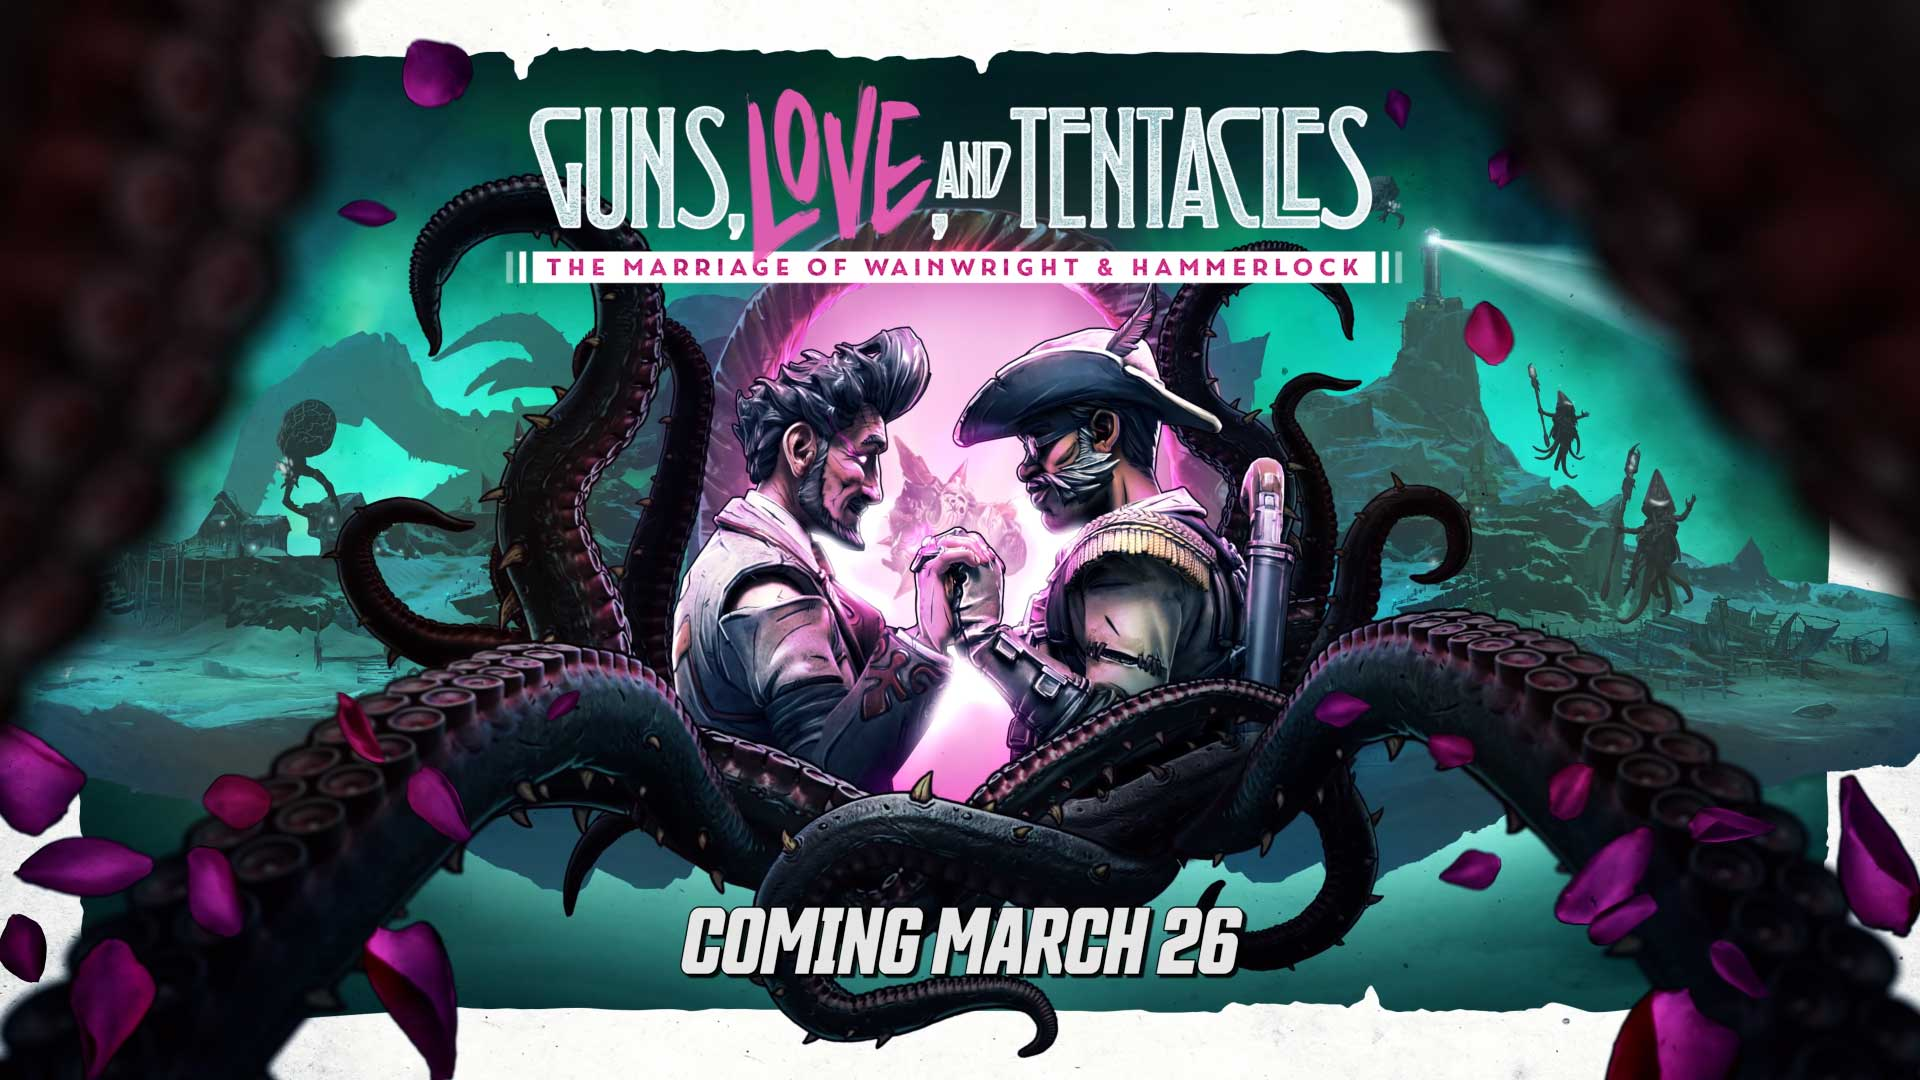 Borderlands 3 DLC Steam Epic games Store Guns, Love and Tentacles - The Marriage of Wainwright and Hammerlock